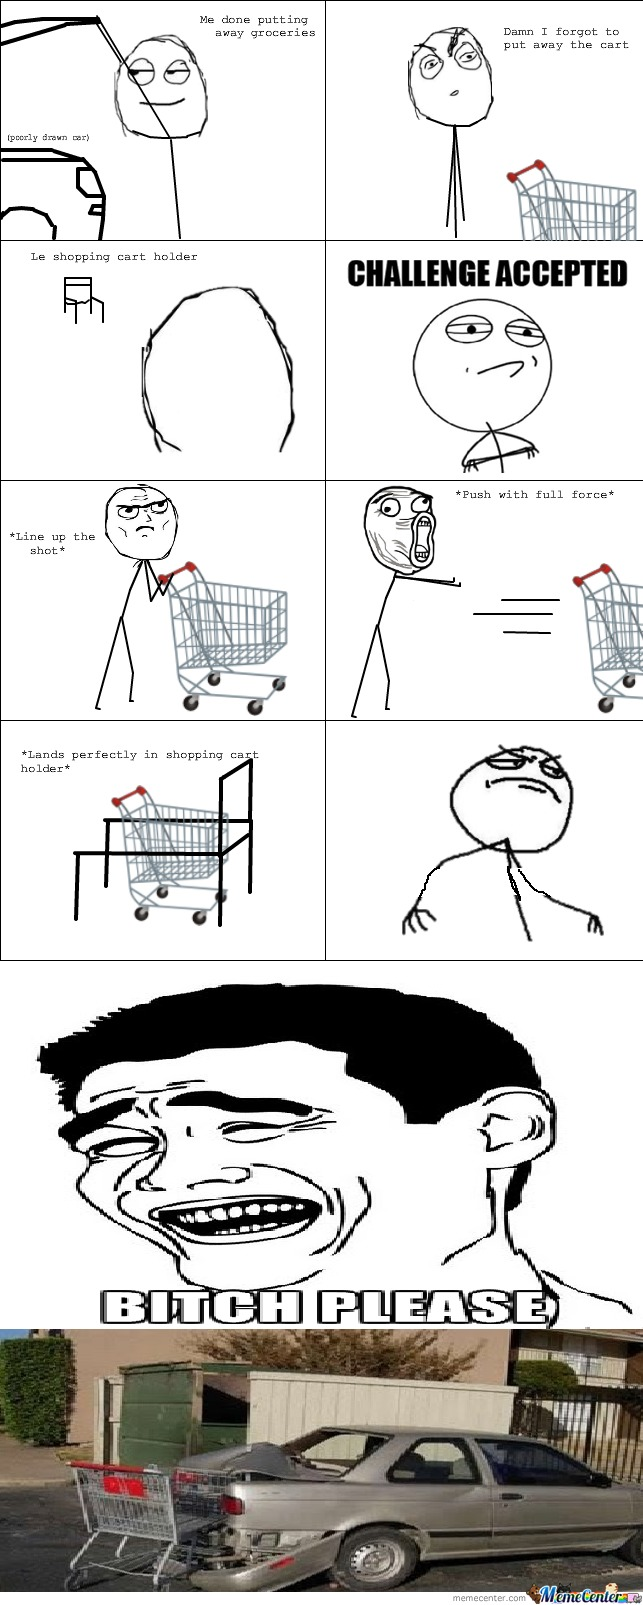 Trolley's Are The Real Trolls!